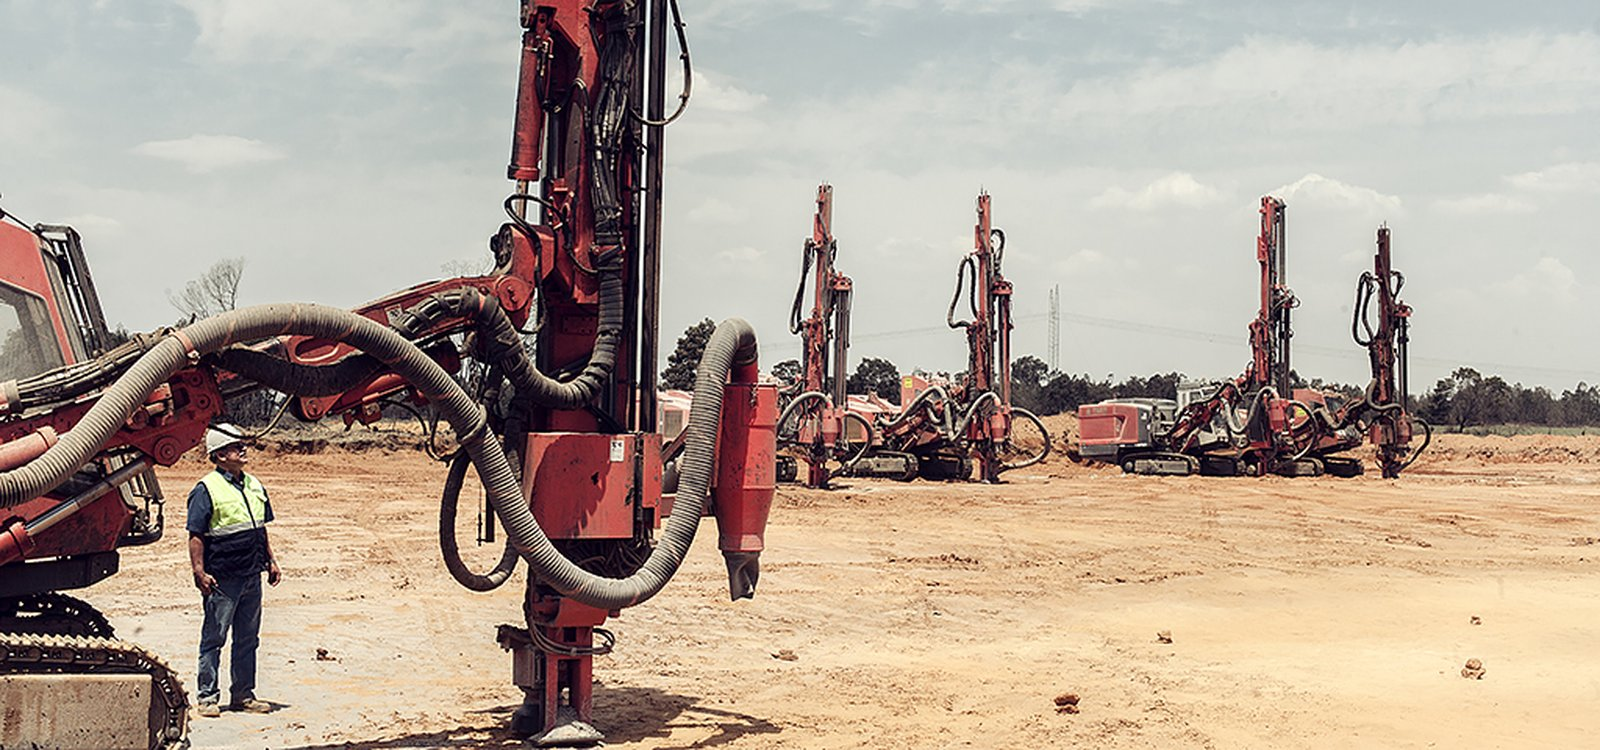 Highpoint and Diesel Power are mining contractors that specialize in drilling and blasting.